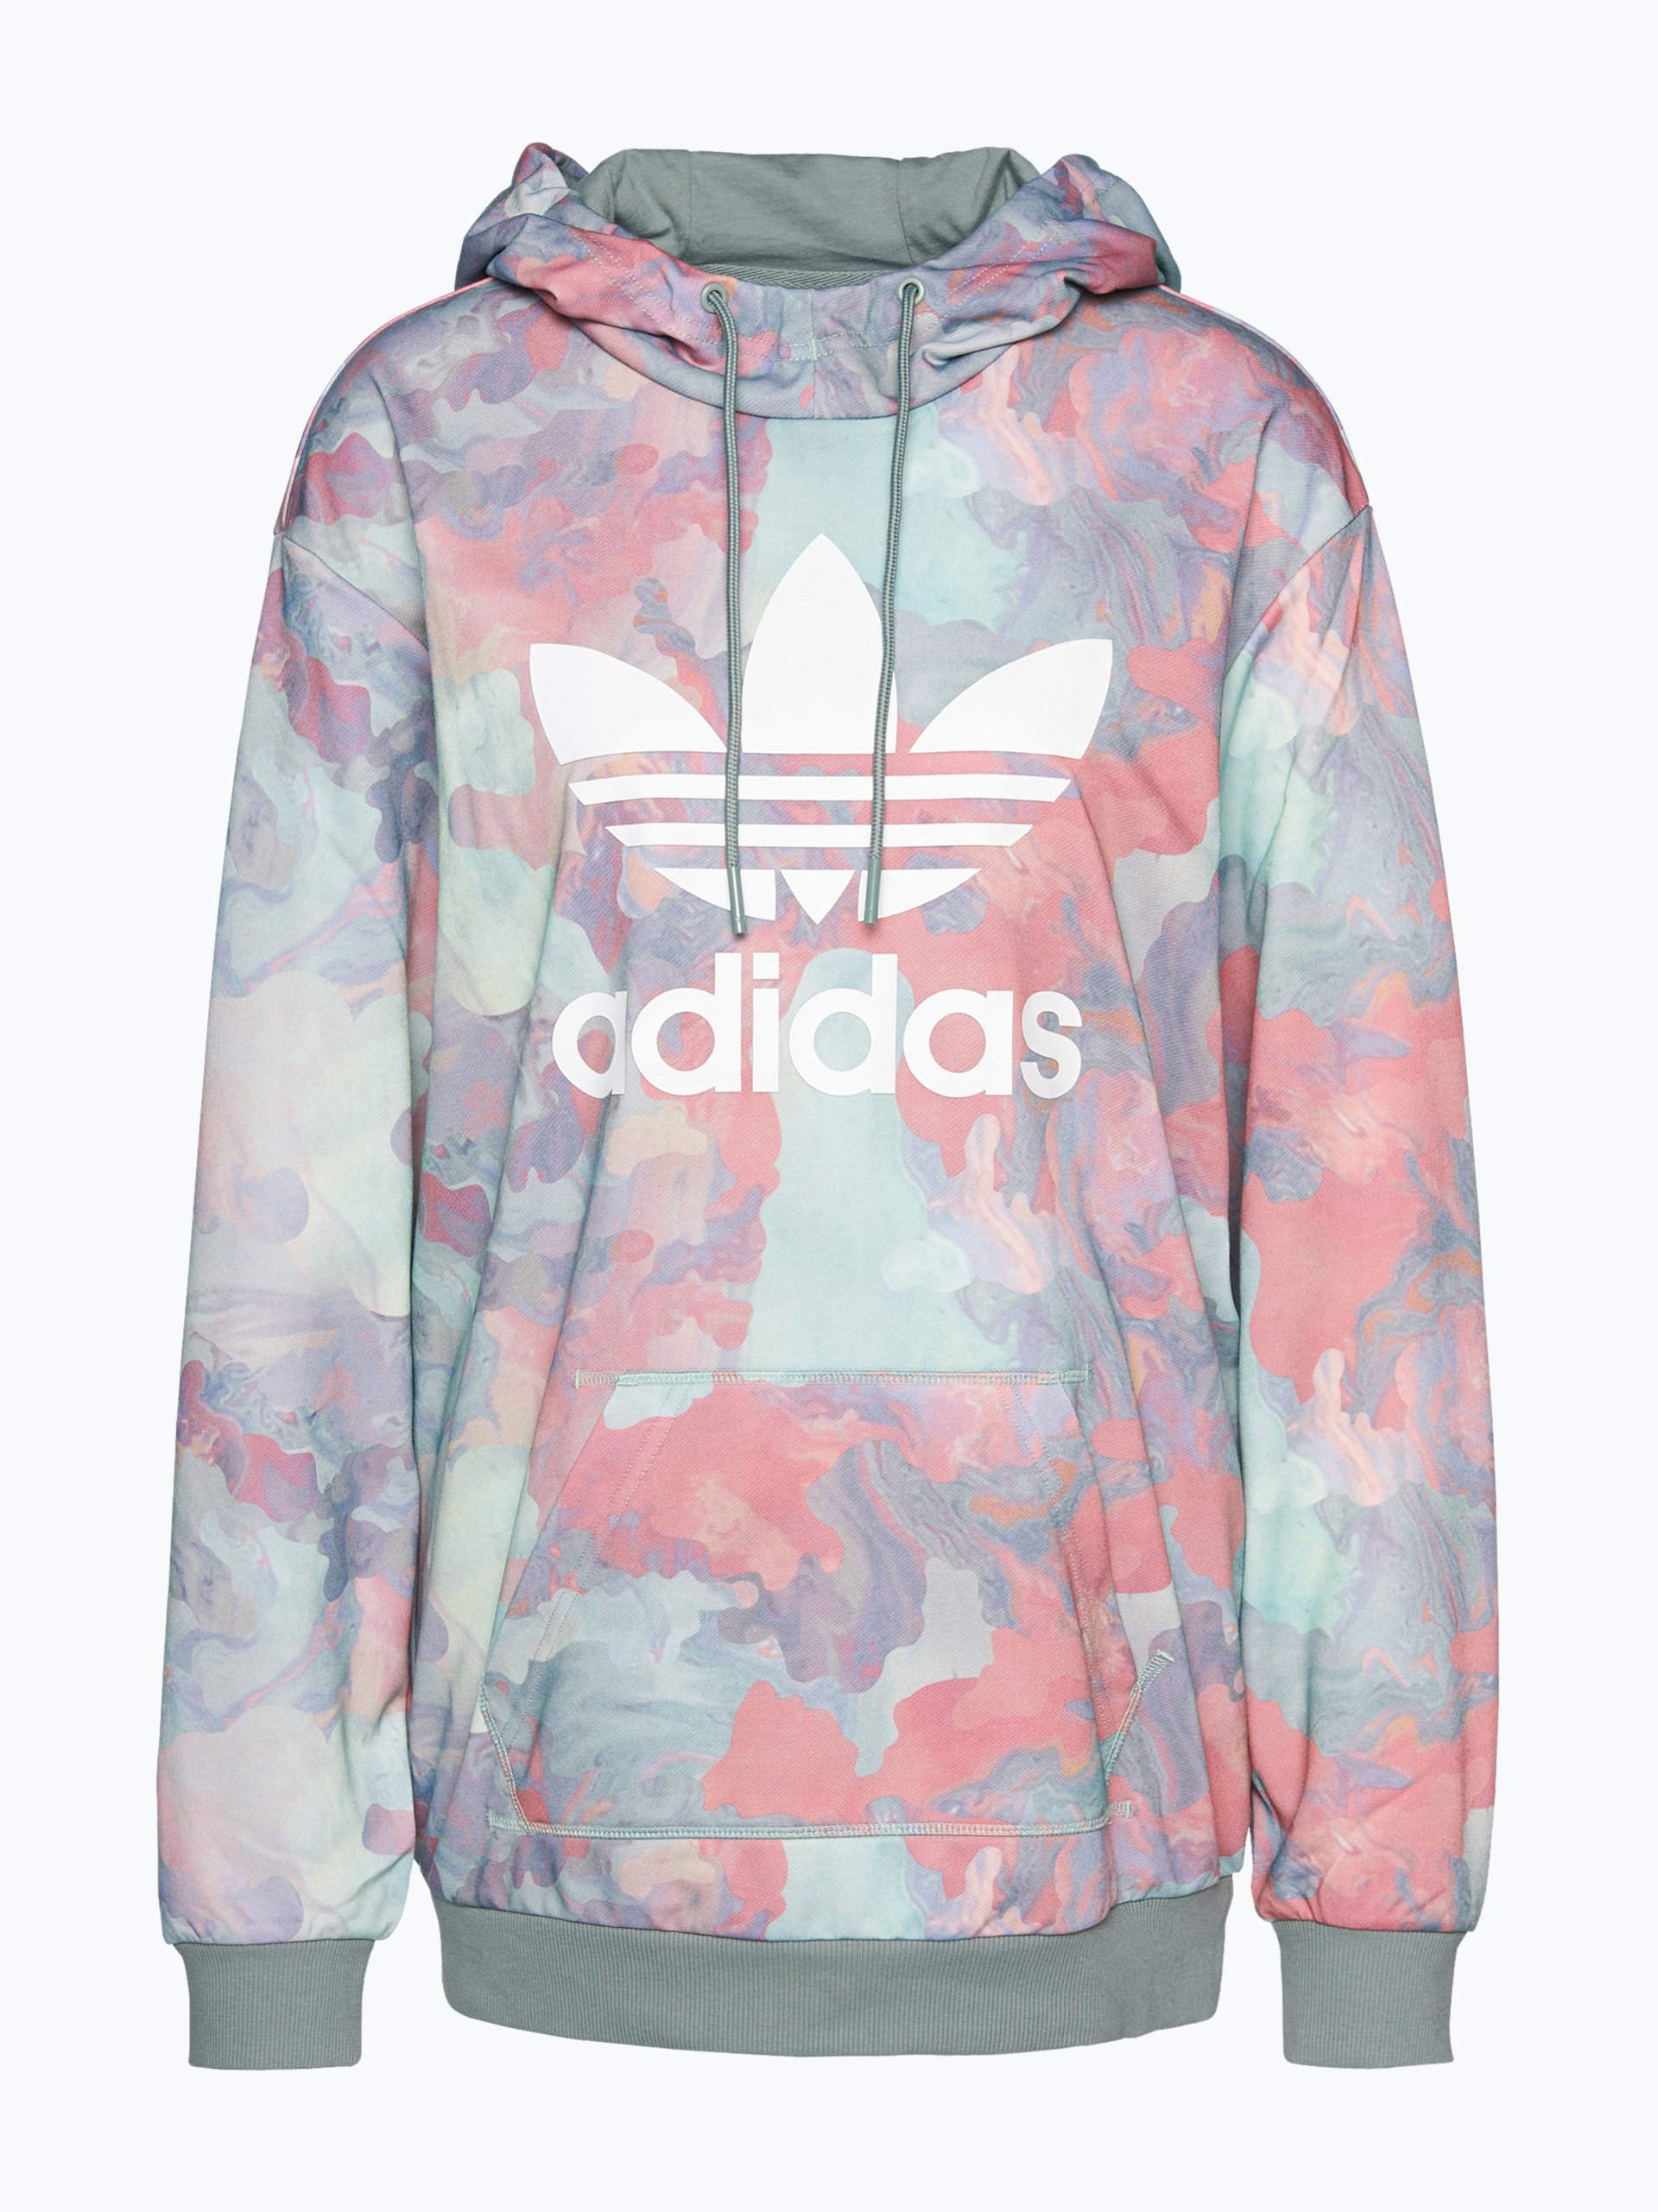 adidas originals damen sportswear sweatshirt mehrfarbig. Black Bedroom Furniture Sets. Home Design Ideas